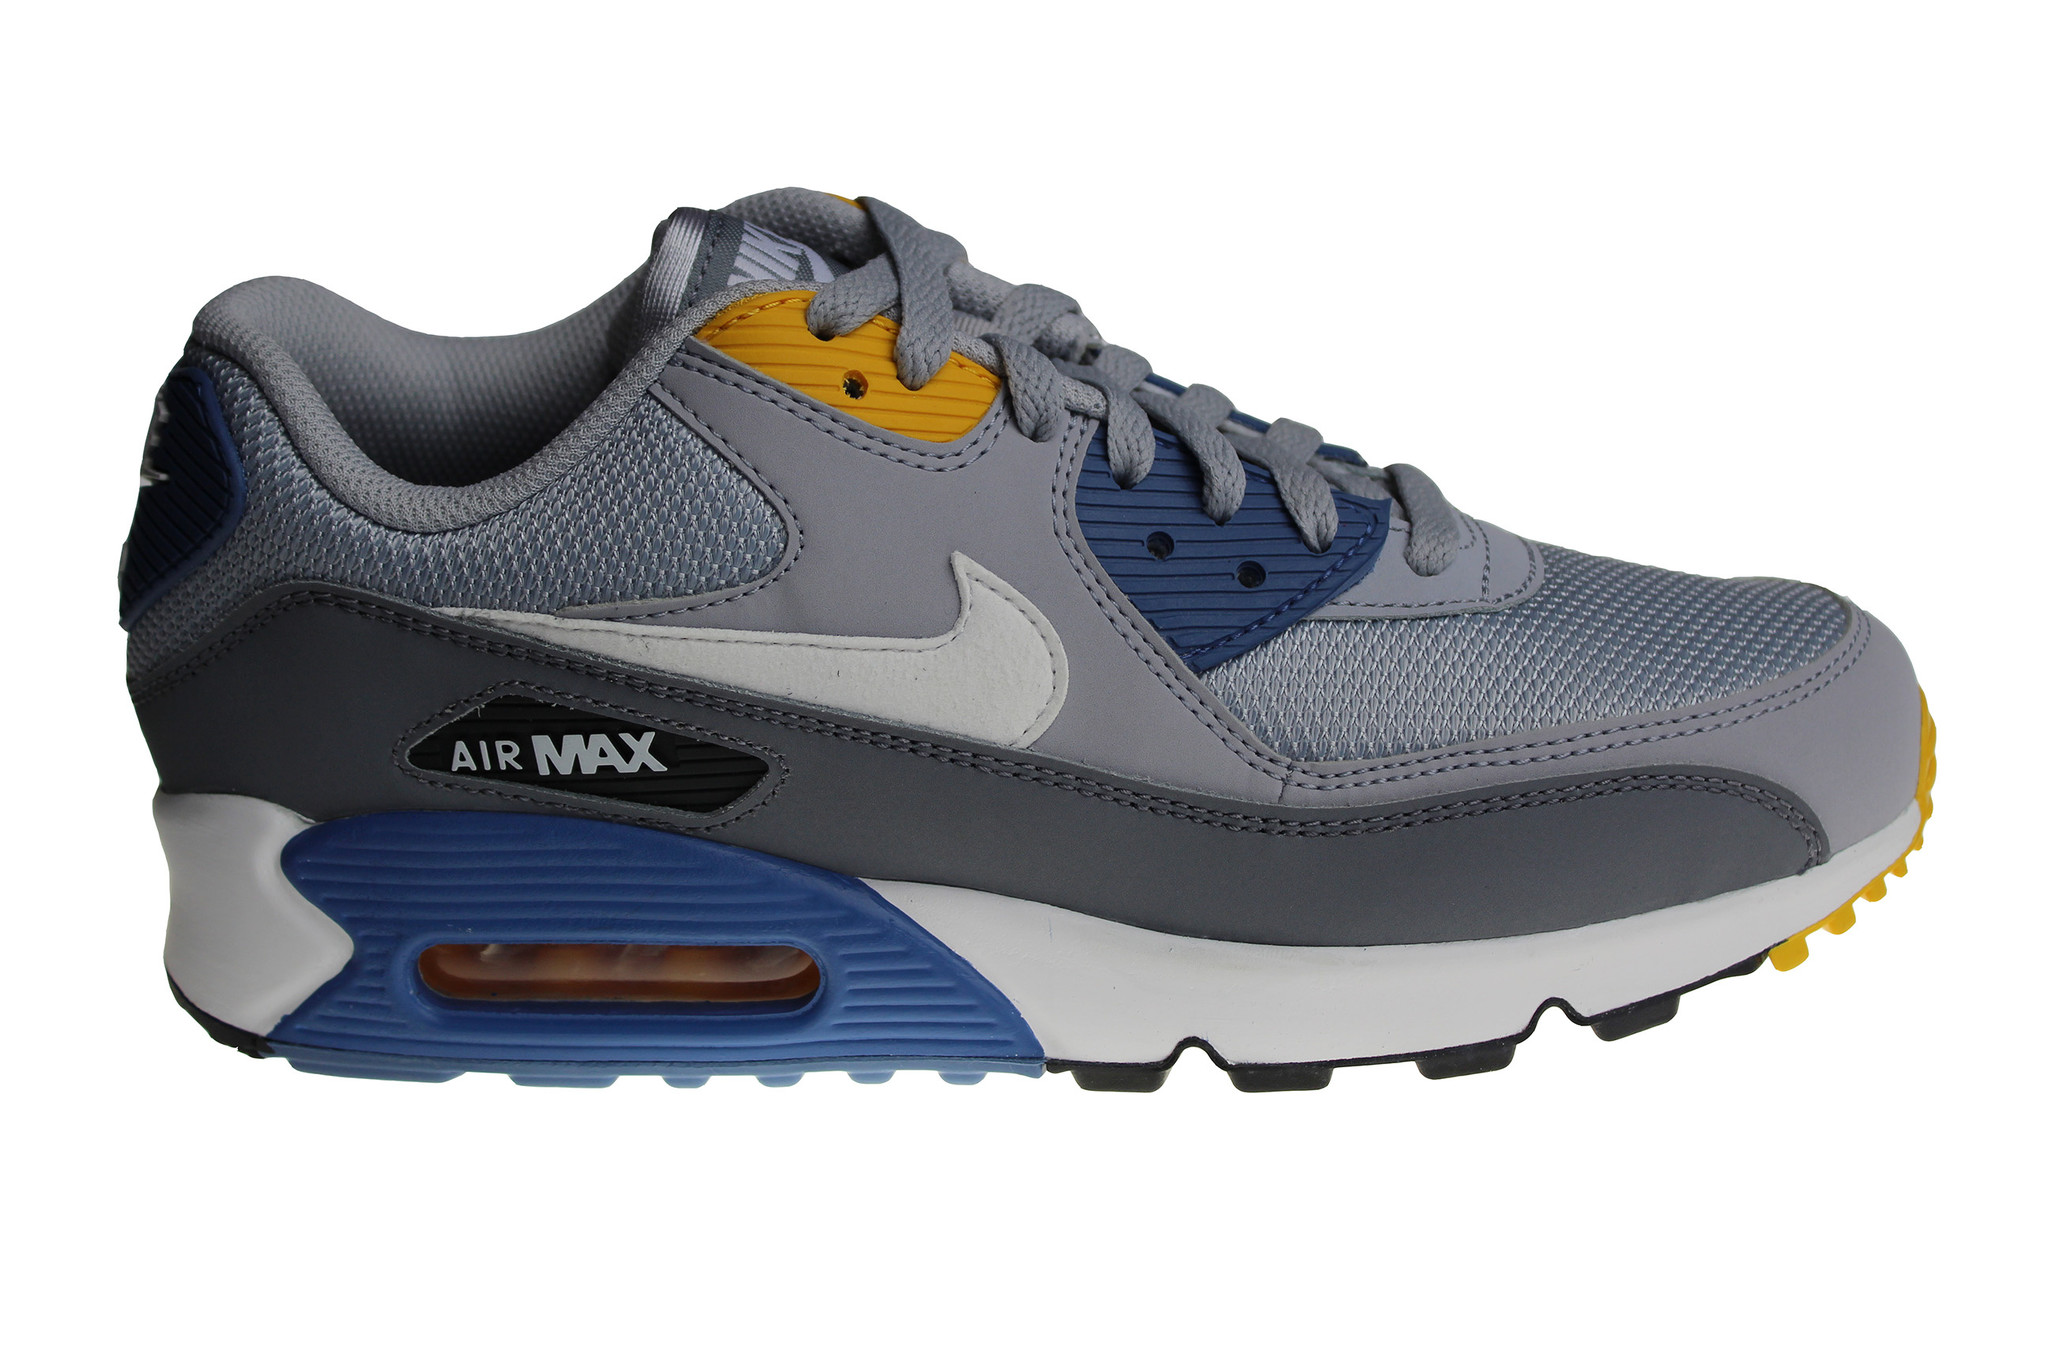 innovative design 9b7a9 b29d7 Nike Air Max 90 Essential AJ1285 016 Men's Sneaker